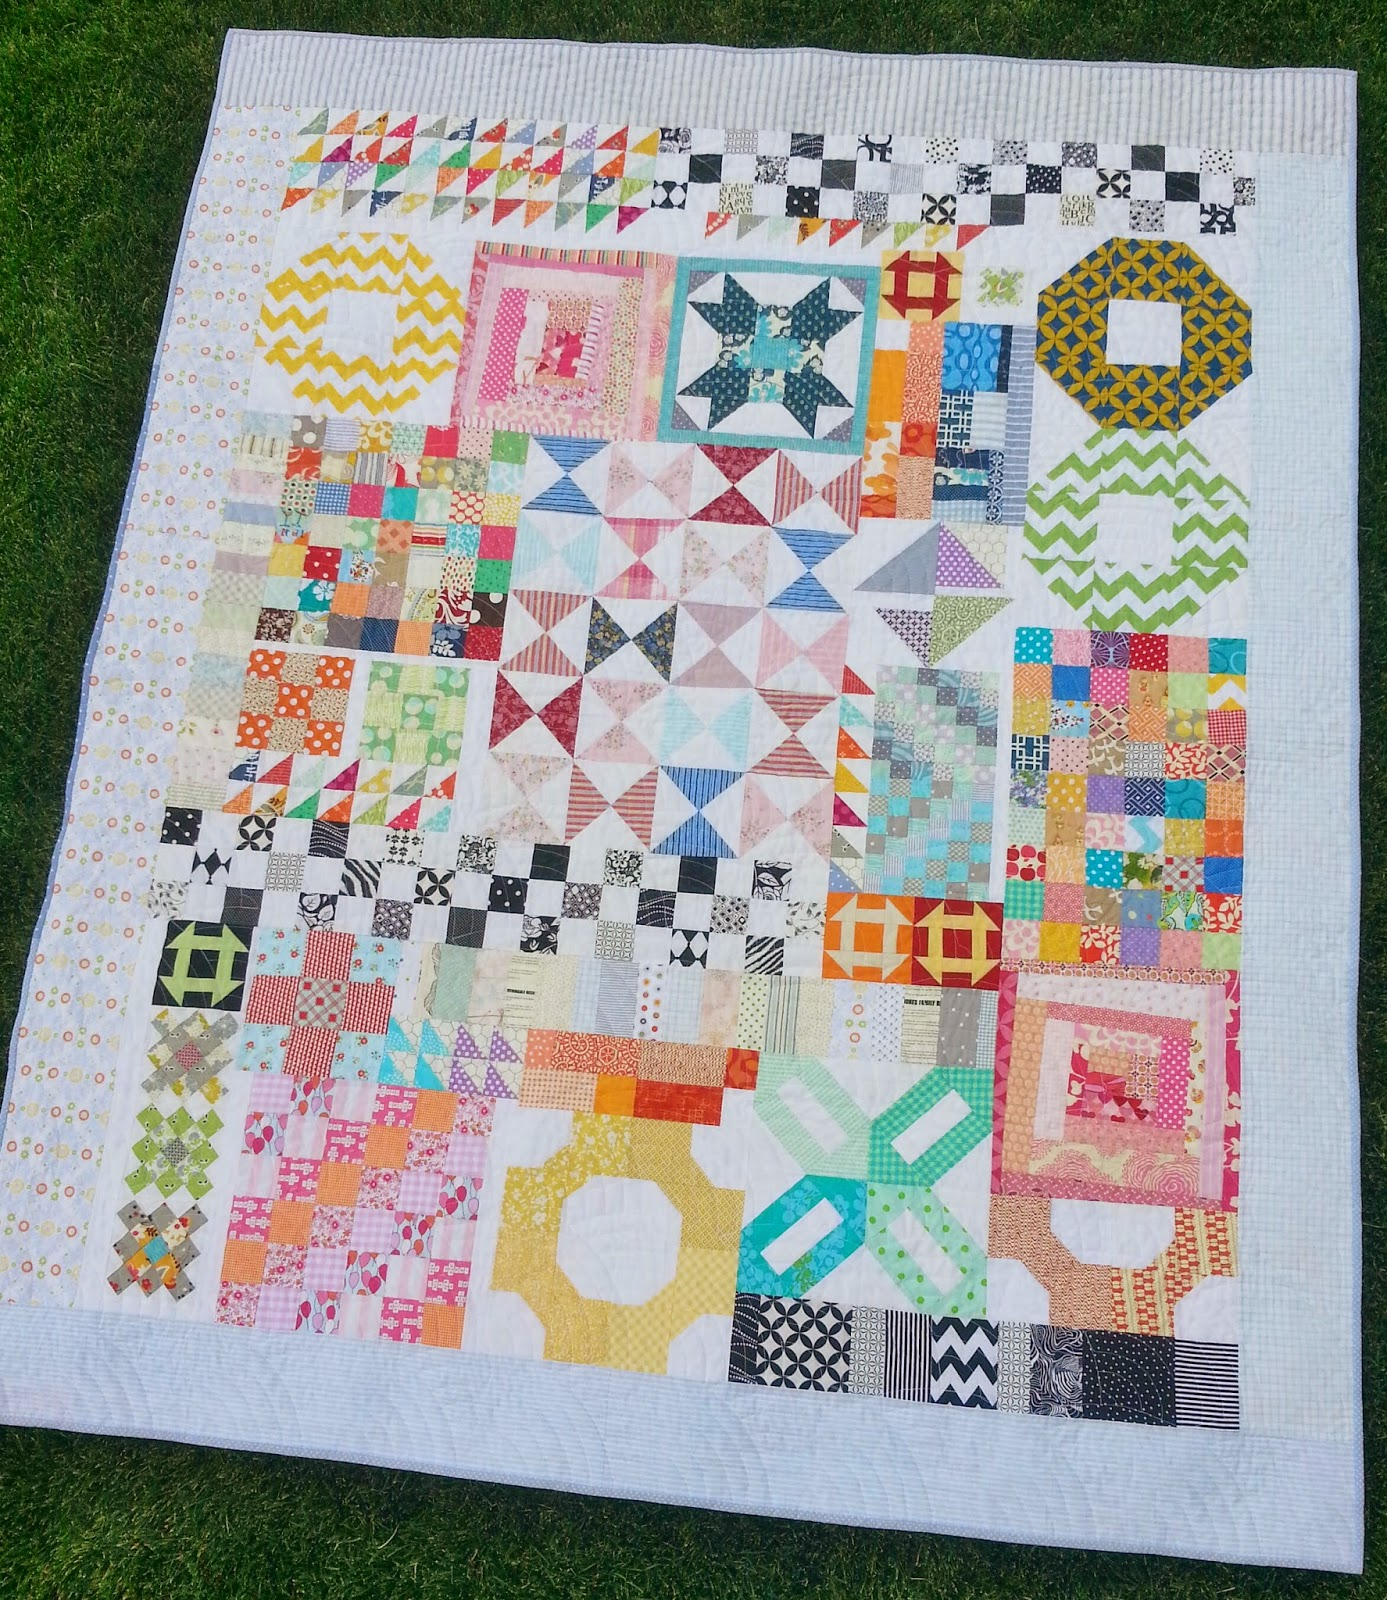 Kitchen Sink Quilt Finished